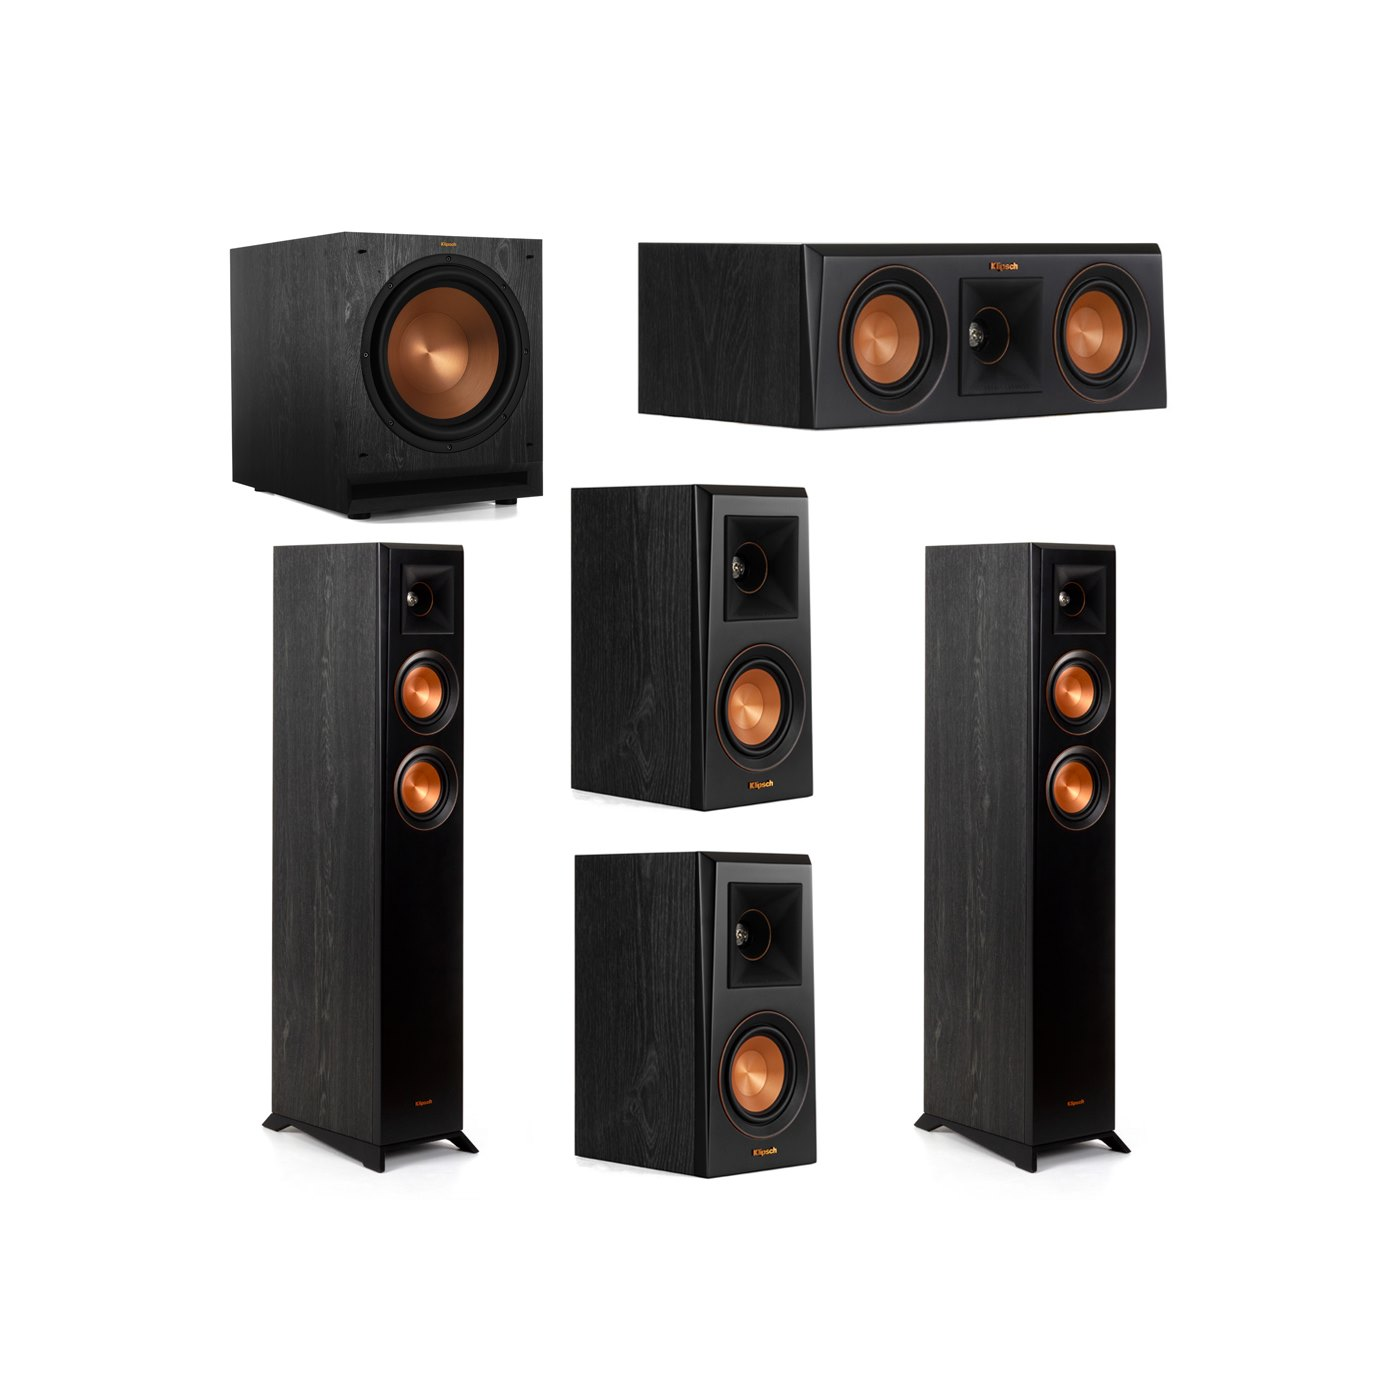 Klipsch 5.1 System with 2 RP-4000F Floorstanding Speakers, 1 Klipsch RP-400C Center Speaker, 2 Klipsch RP-400M Surround Speakers, 1 Klipsch SPL-120 Subwoofer